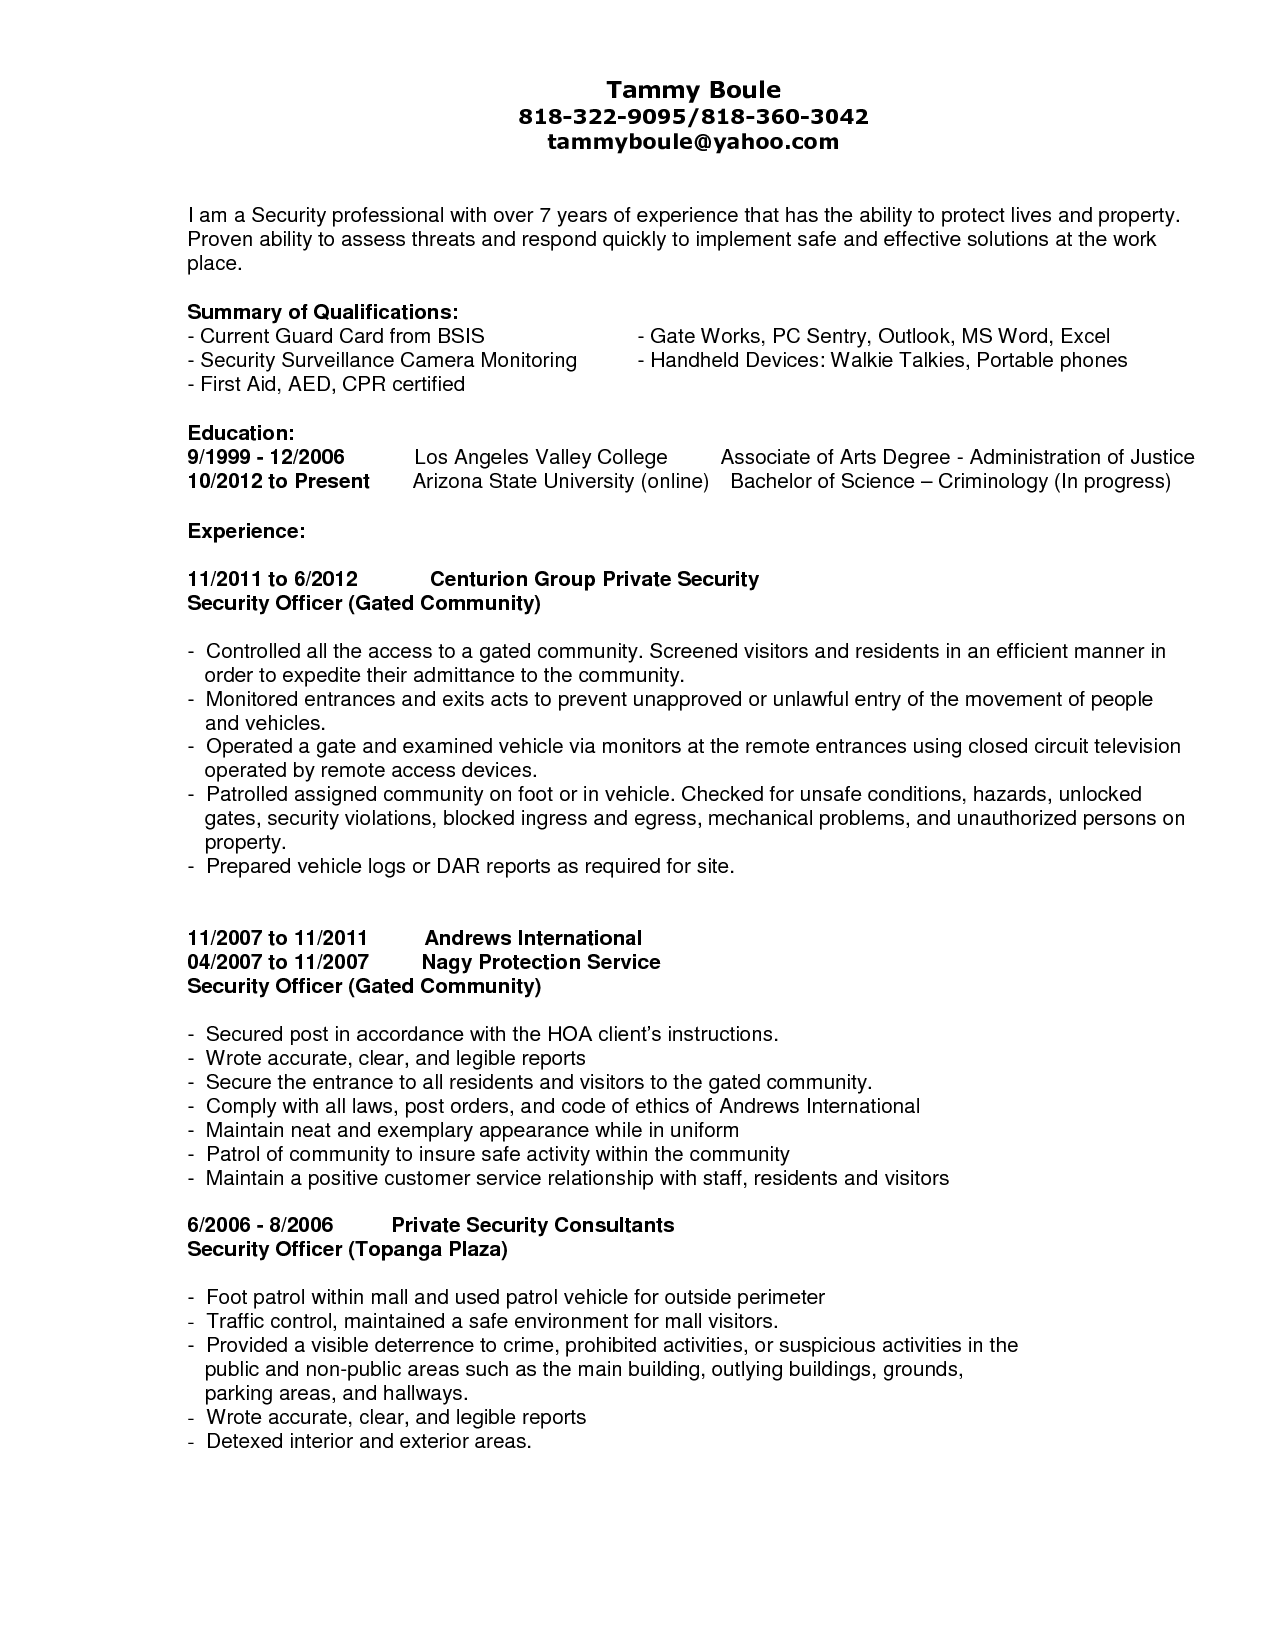 guard security officer resume ideas httpwwwjobresumewebsite - Parking Officer Sample Resume